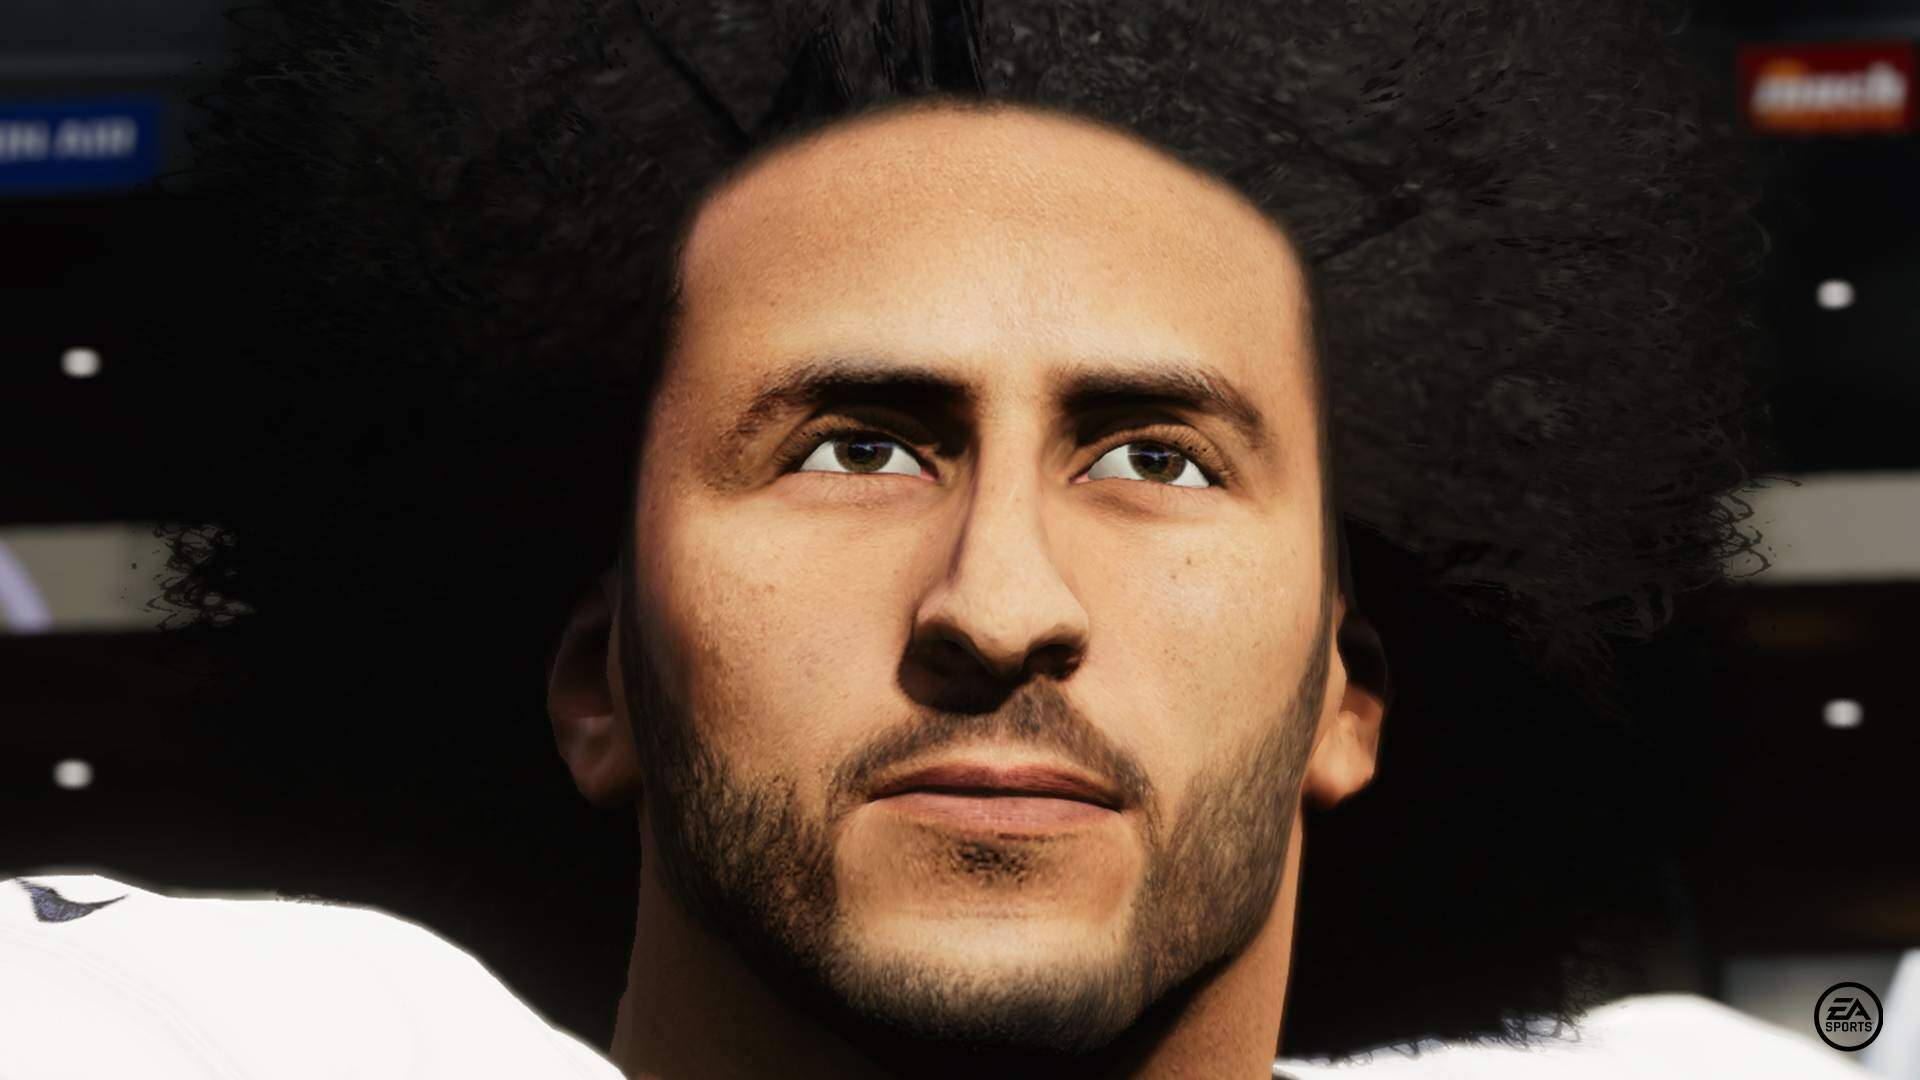 Colin Kaepernick Is Now a Playable Free Agent in Madden NFL 21